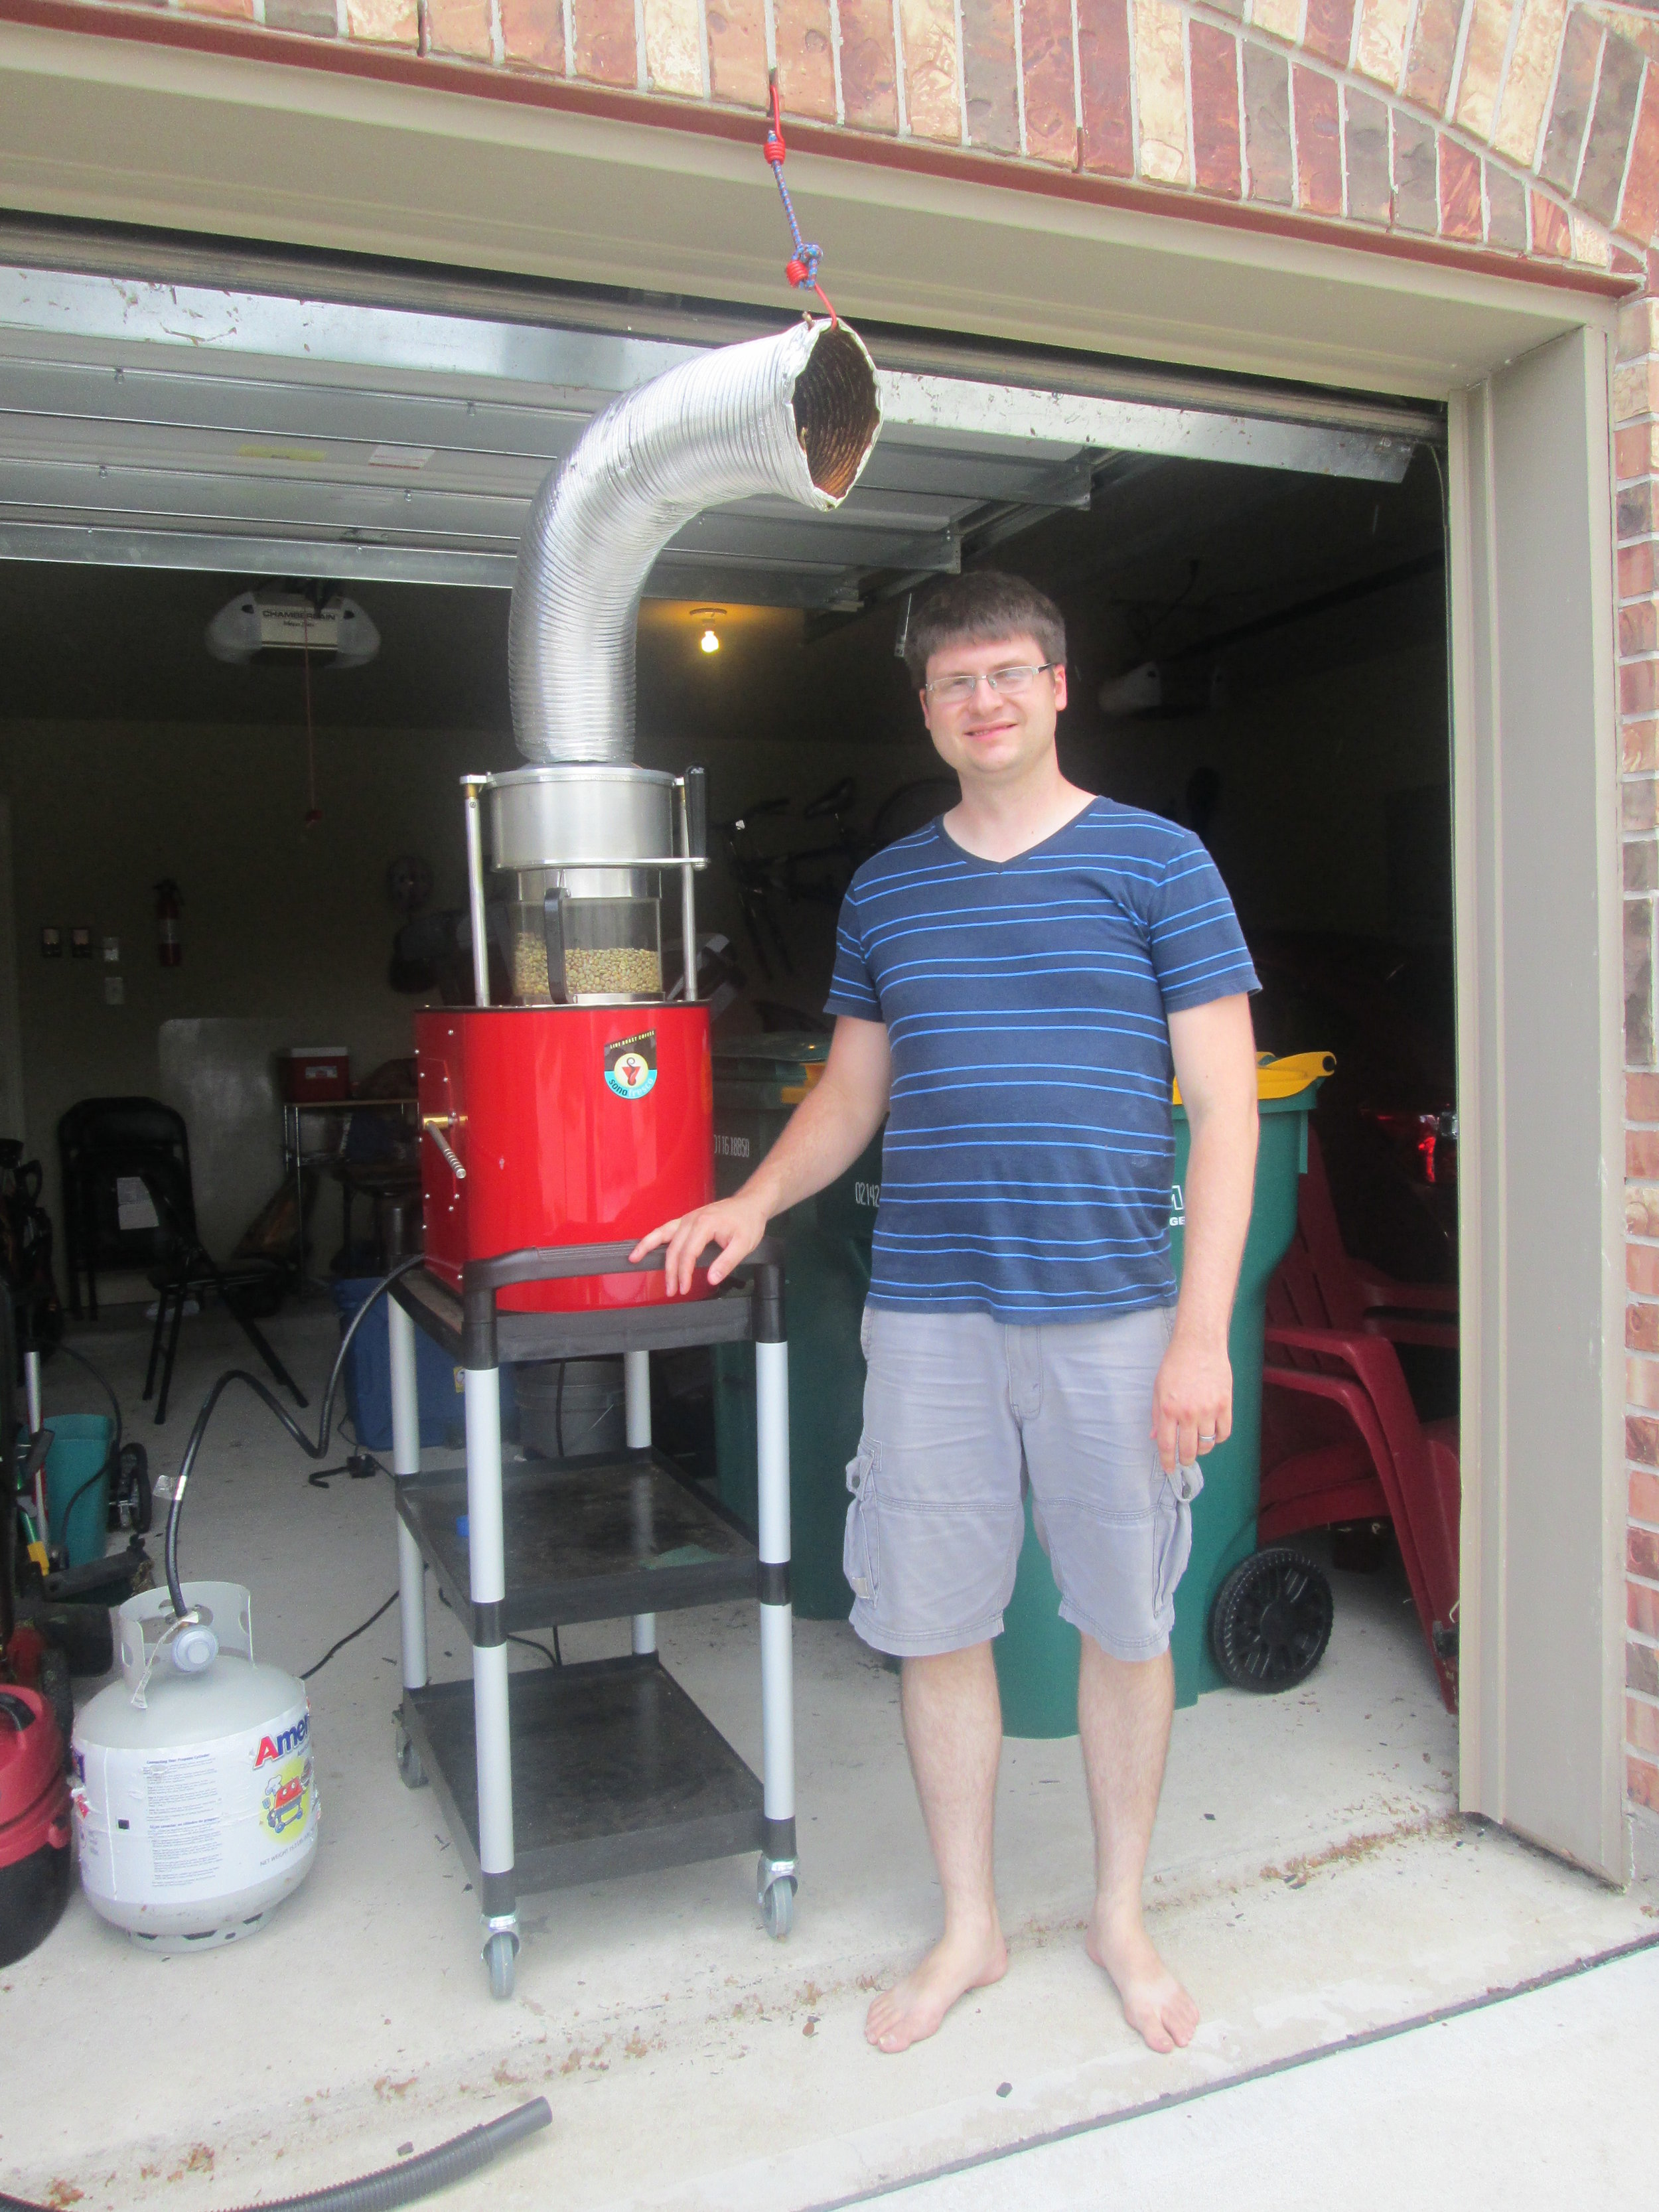 Our humble beginnings, roasting in our garage in 2013.